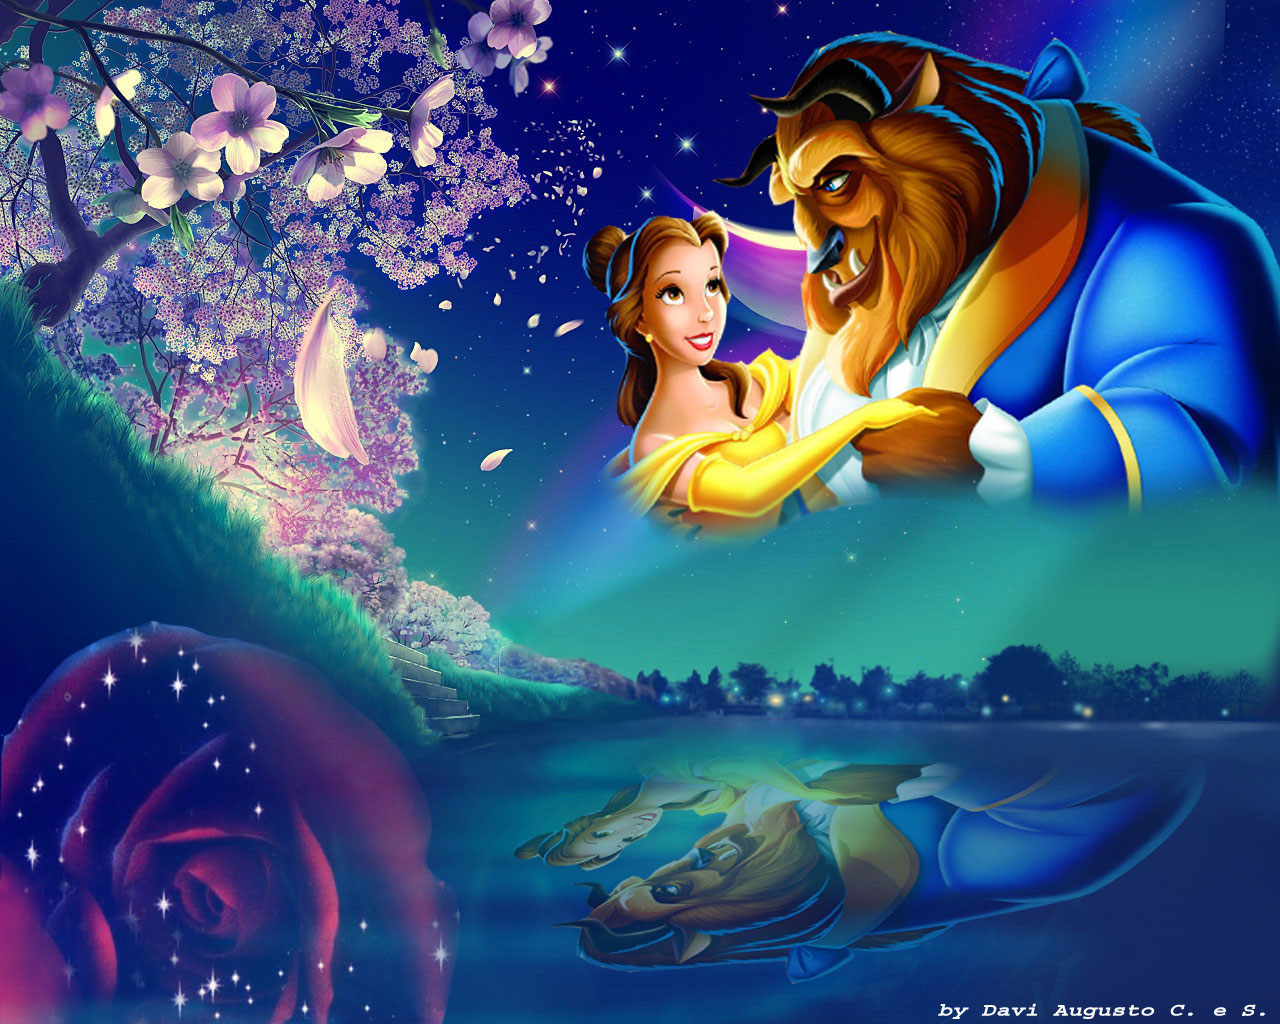 beauty and beast wallpapers free: 1000+ Images About Disney Princess Belle On Pinterest